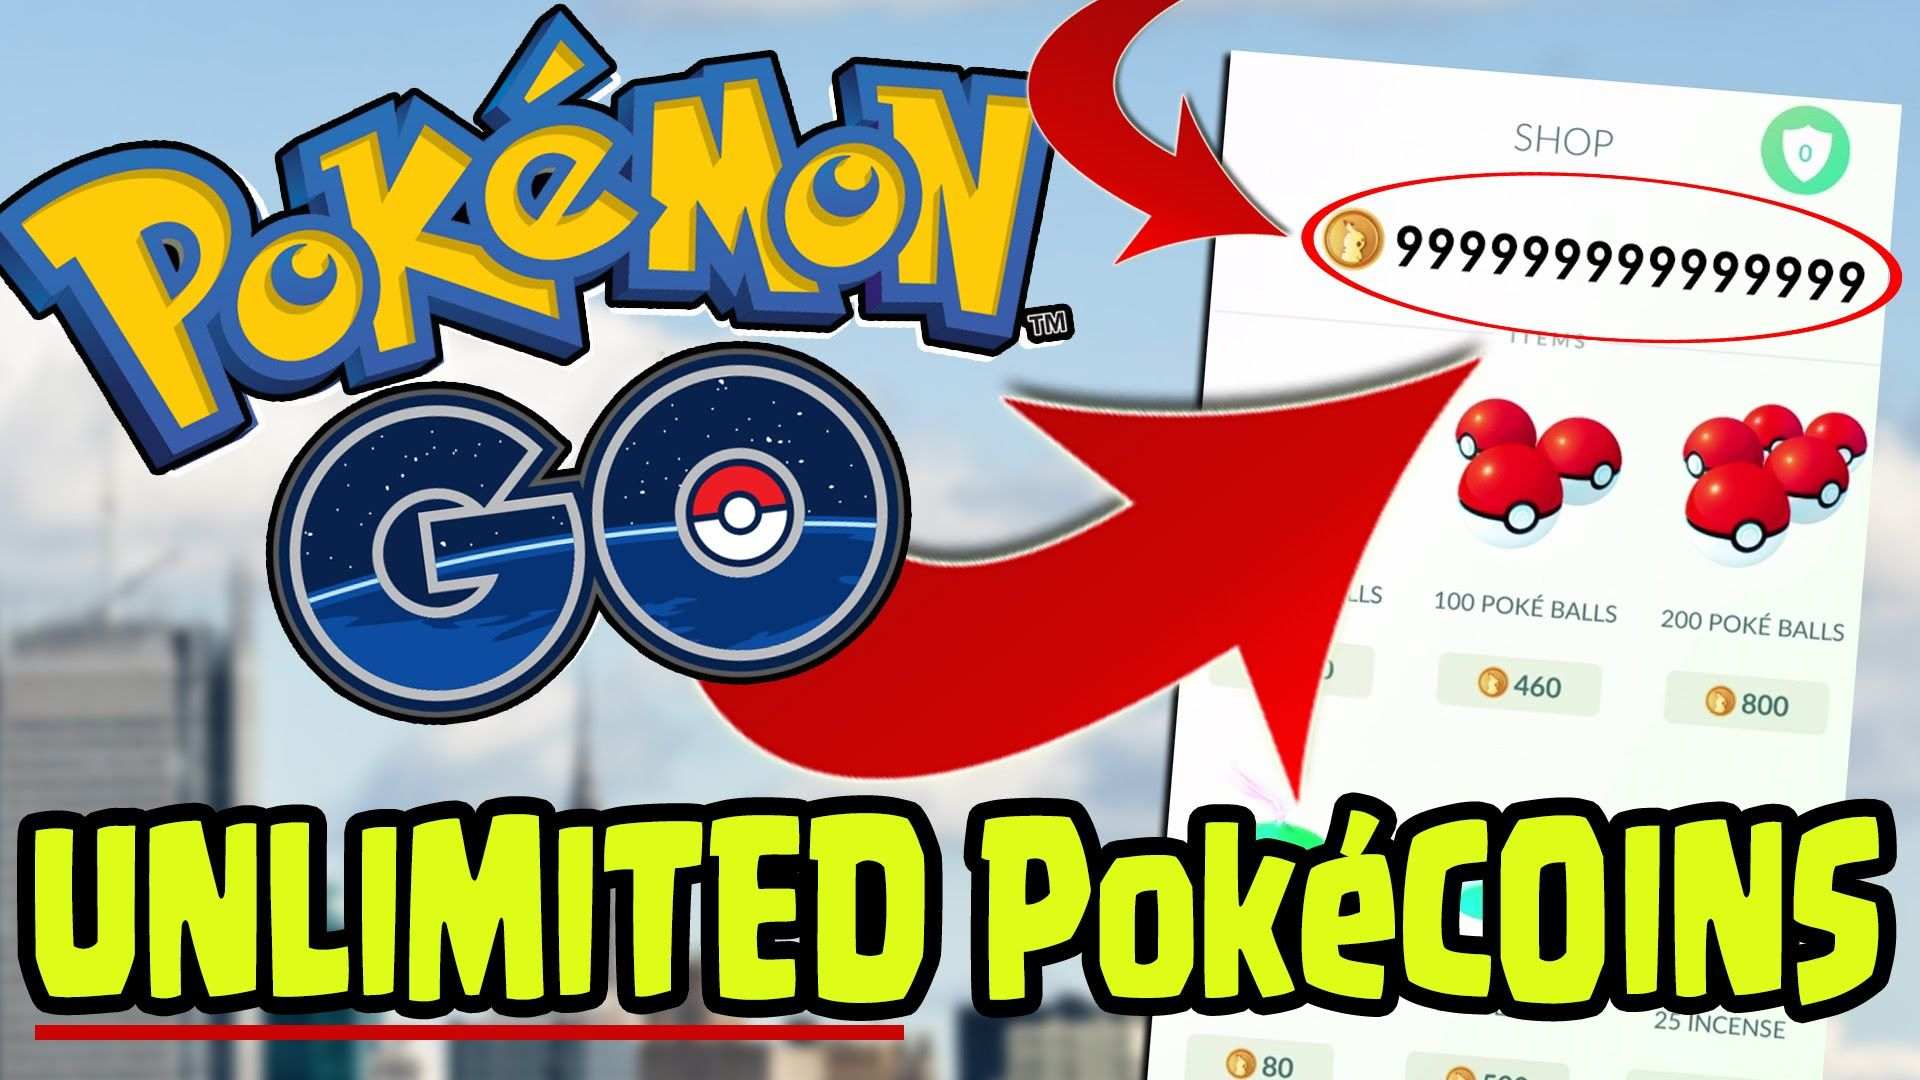 Claim Unlimited Pokecoins & Pokeballs For Free! Tested [November 2020]